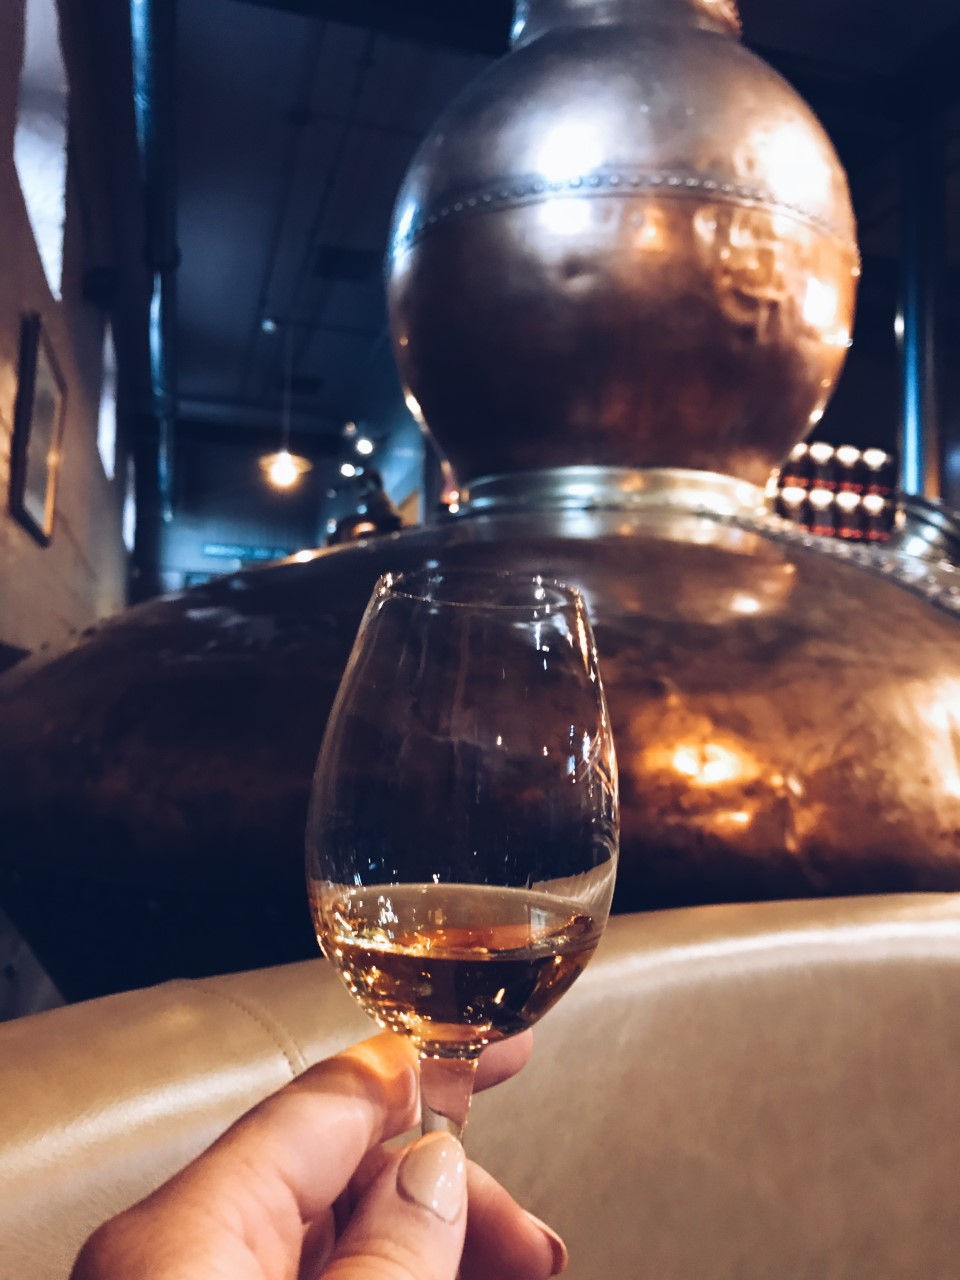 Bushmills Whisky Distillery Tour